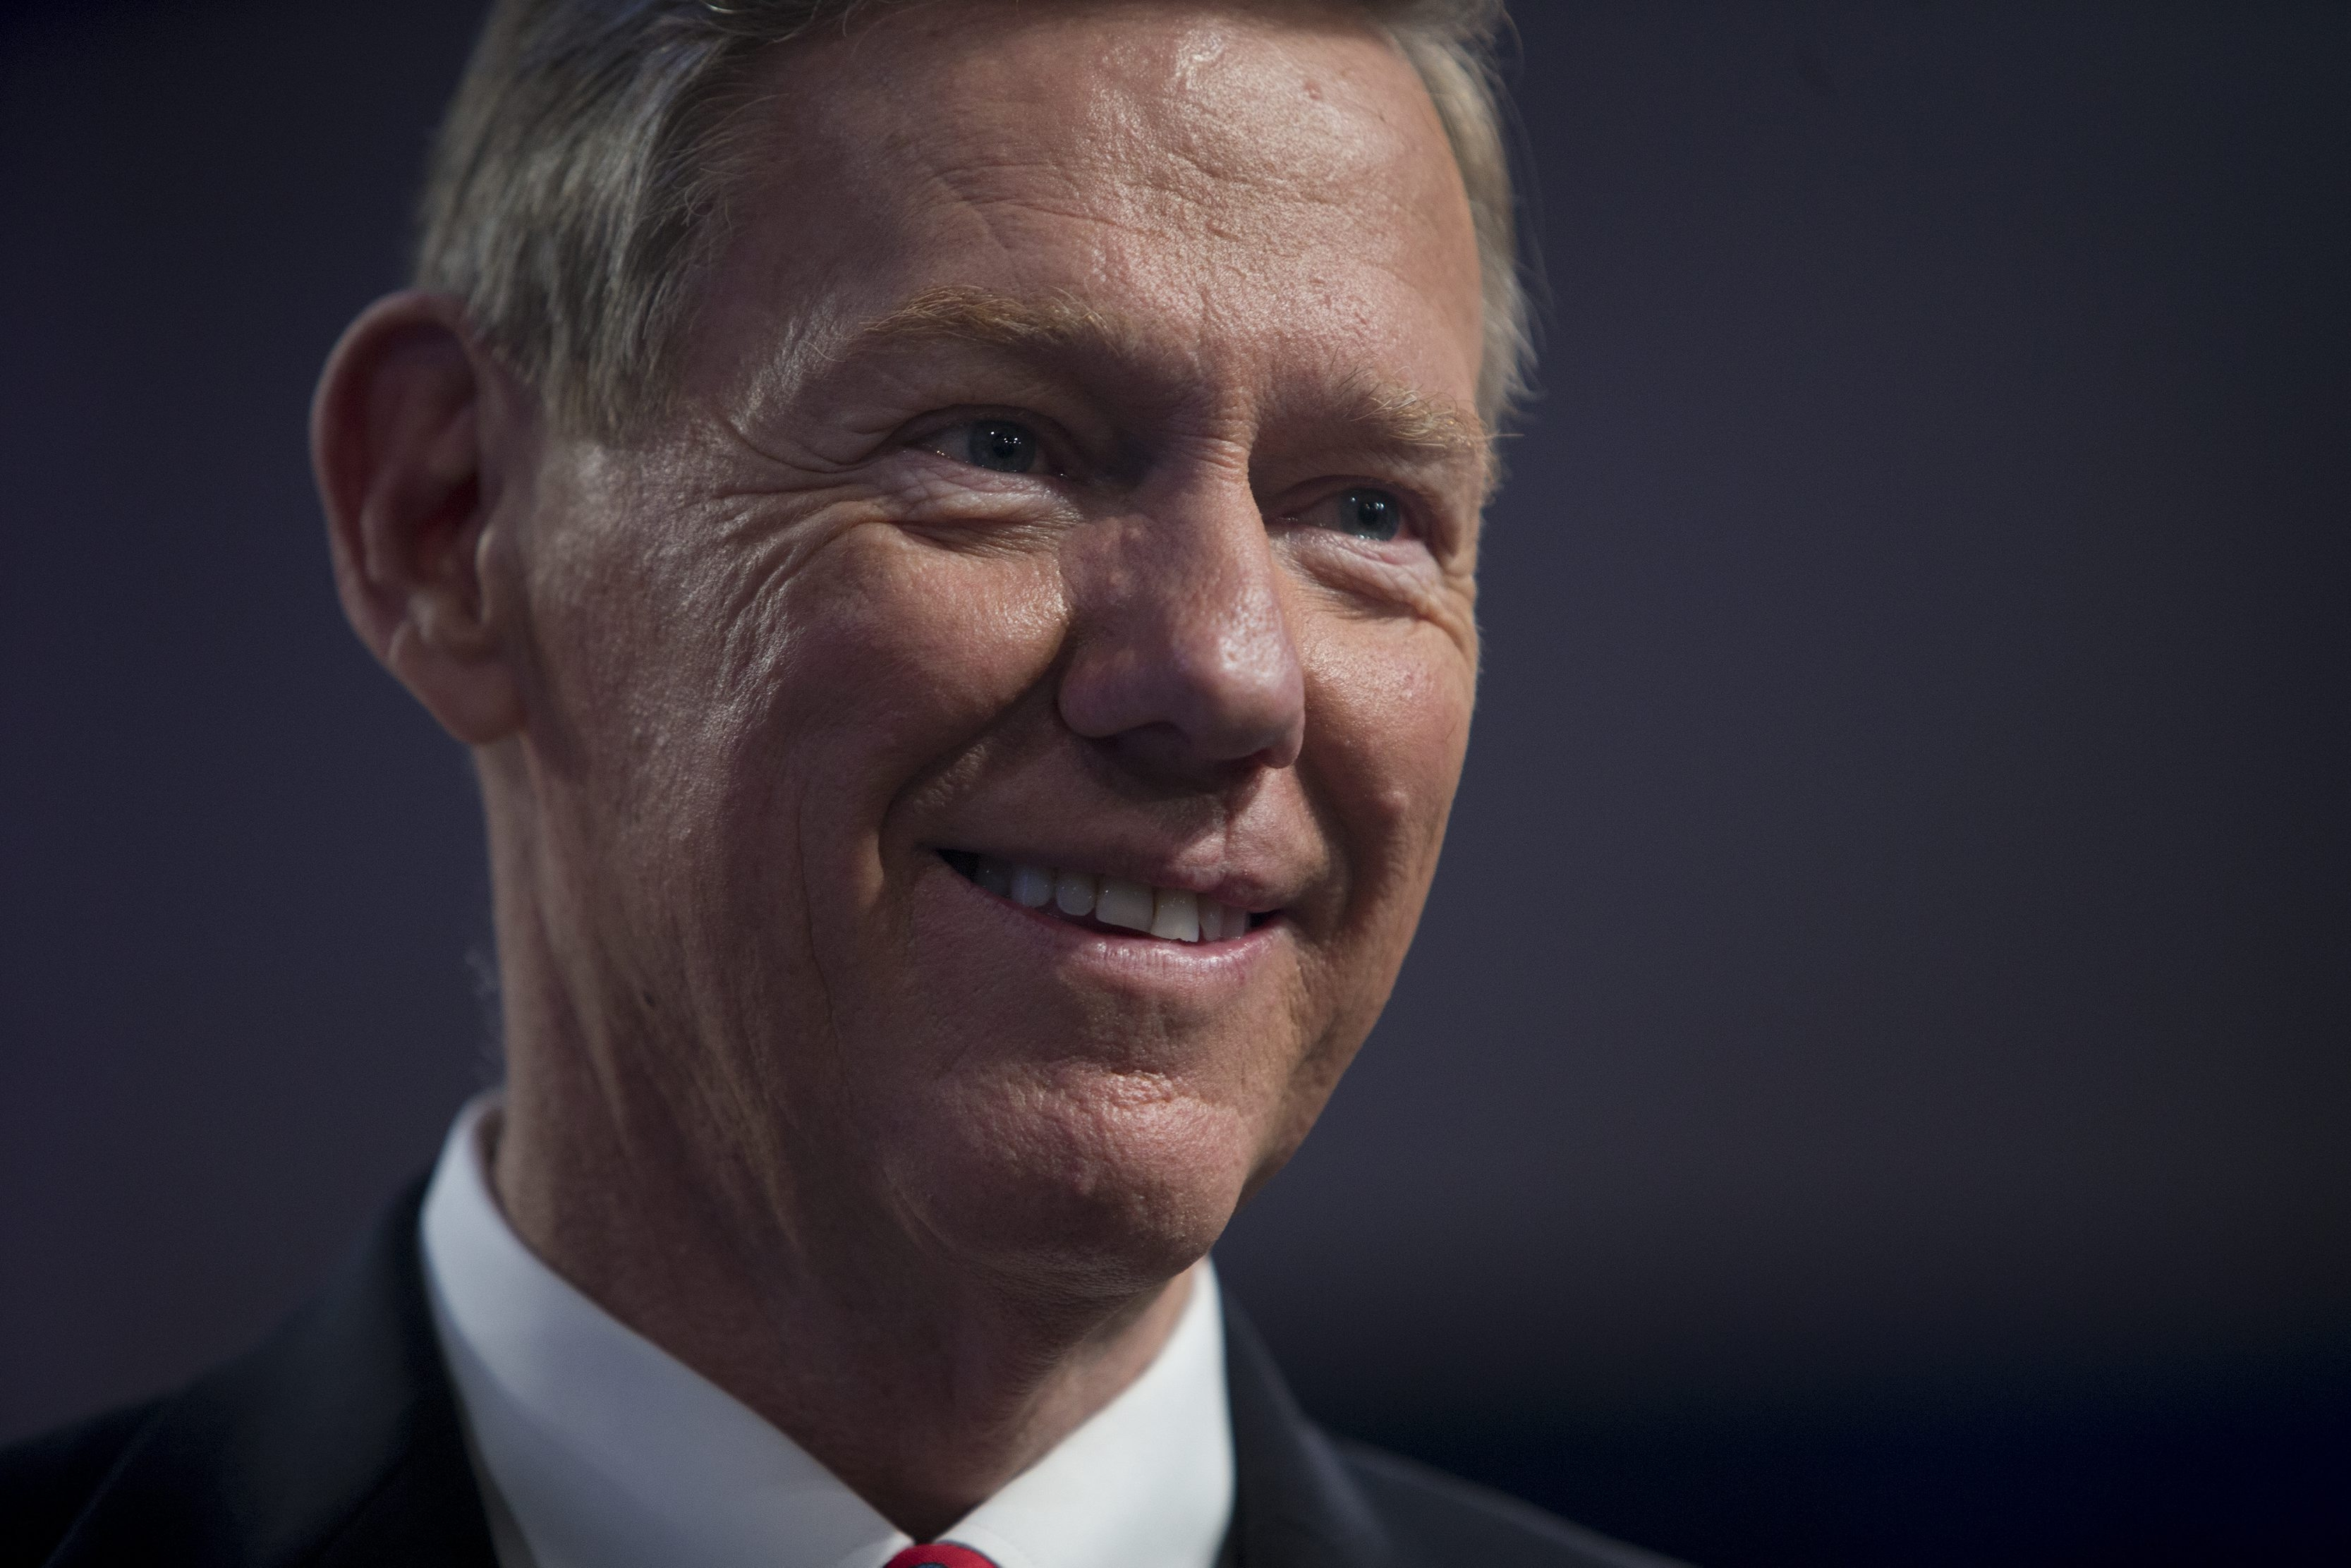 Alan Mulally will stay with Ford through 2014.